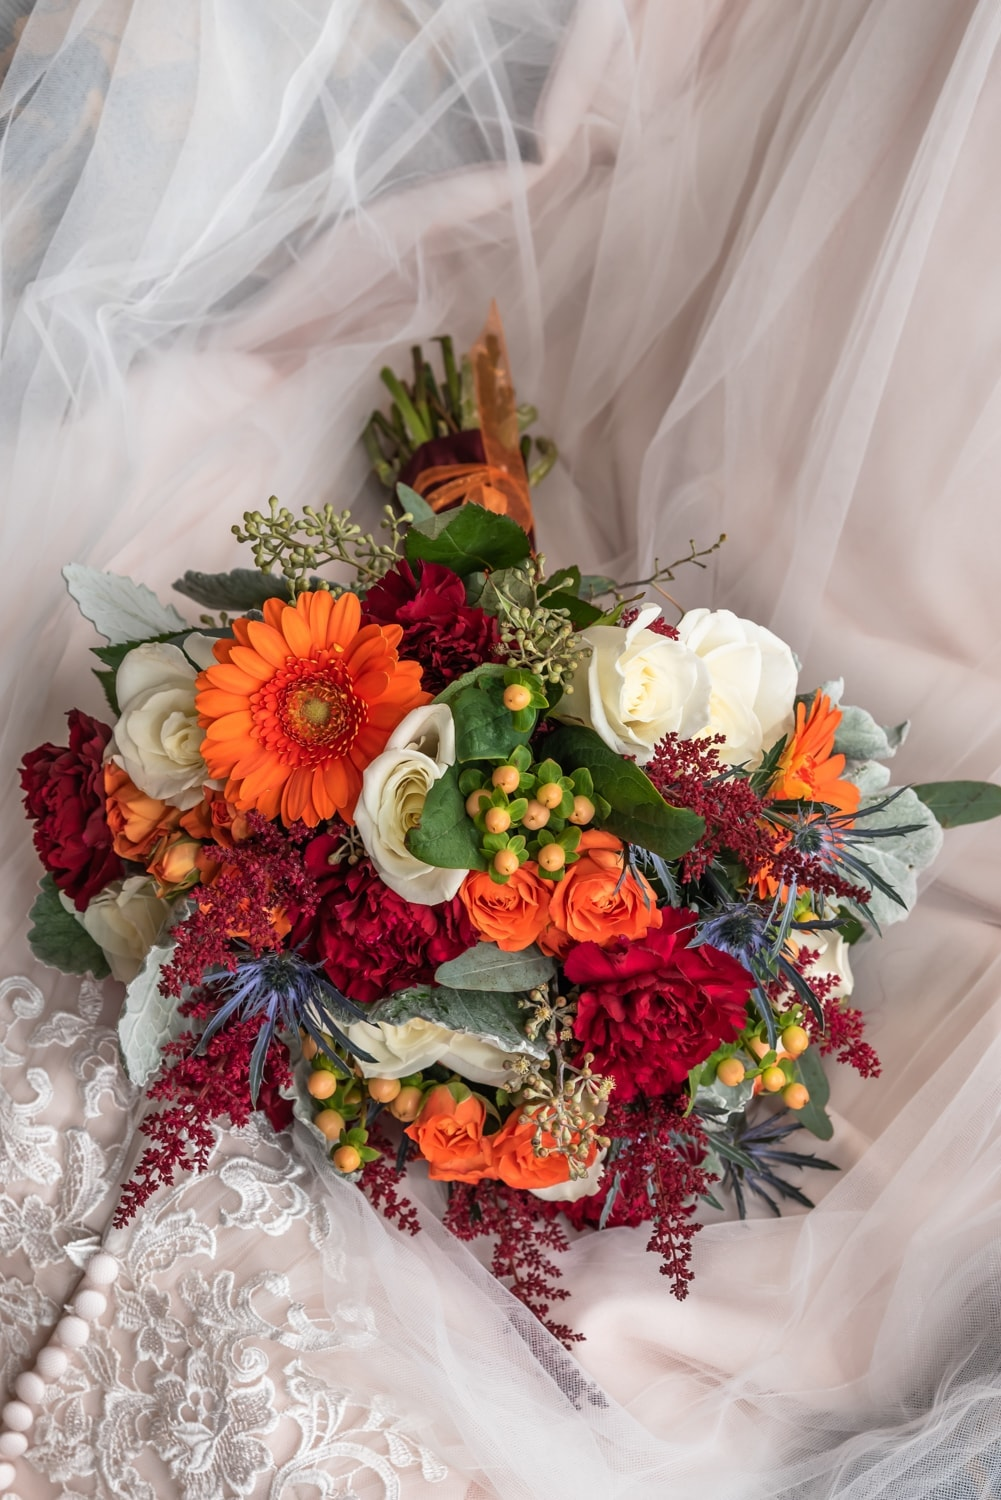 A beautiful wedding bridal bouquet of orange, wines and ivory colored flowers.